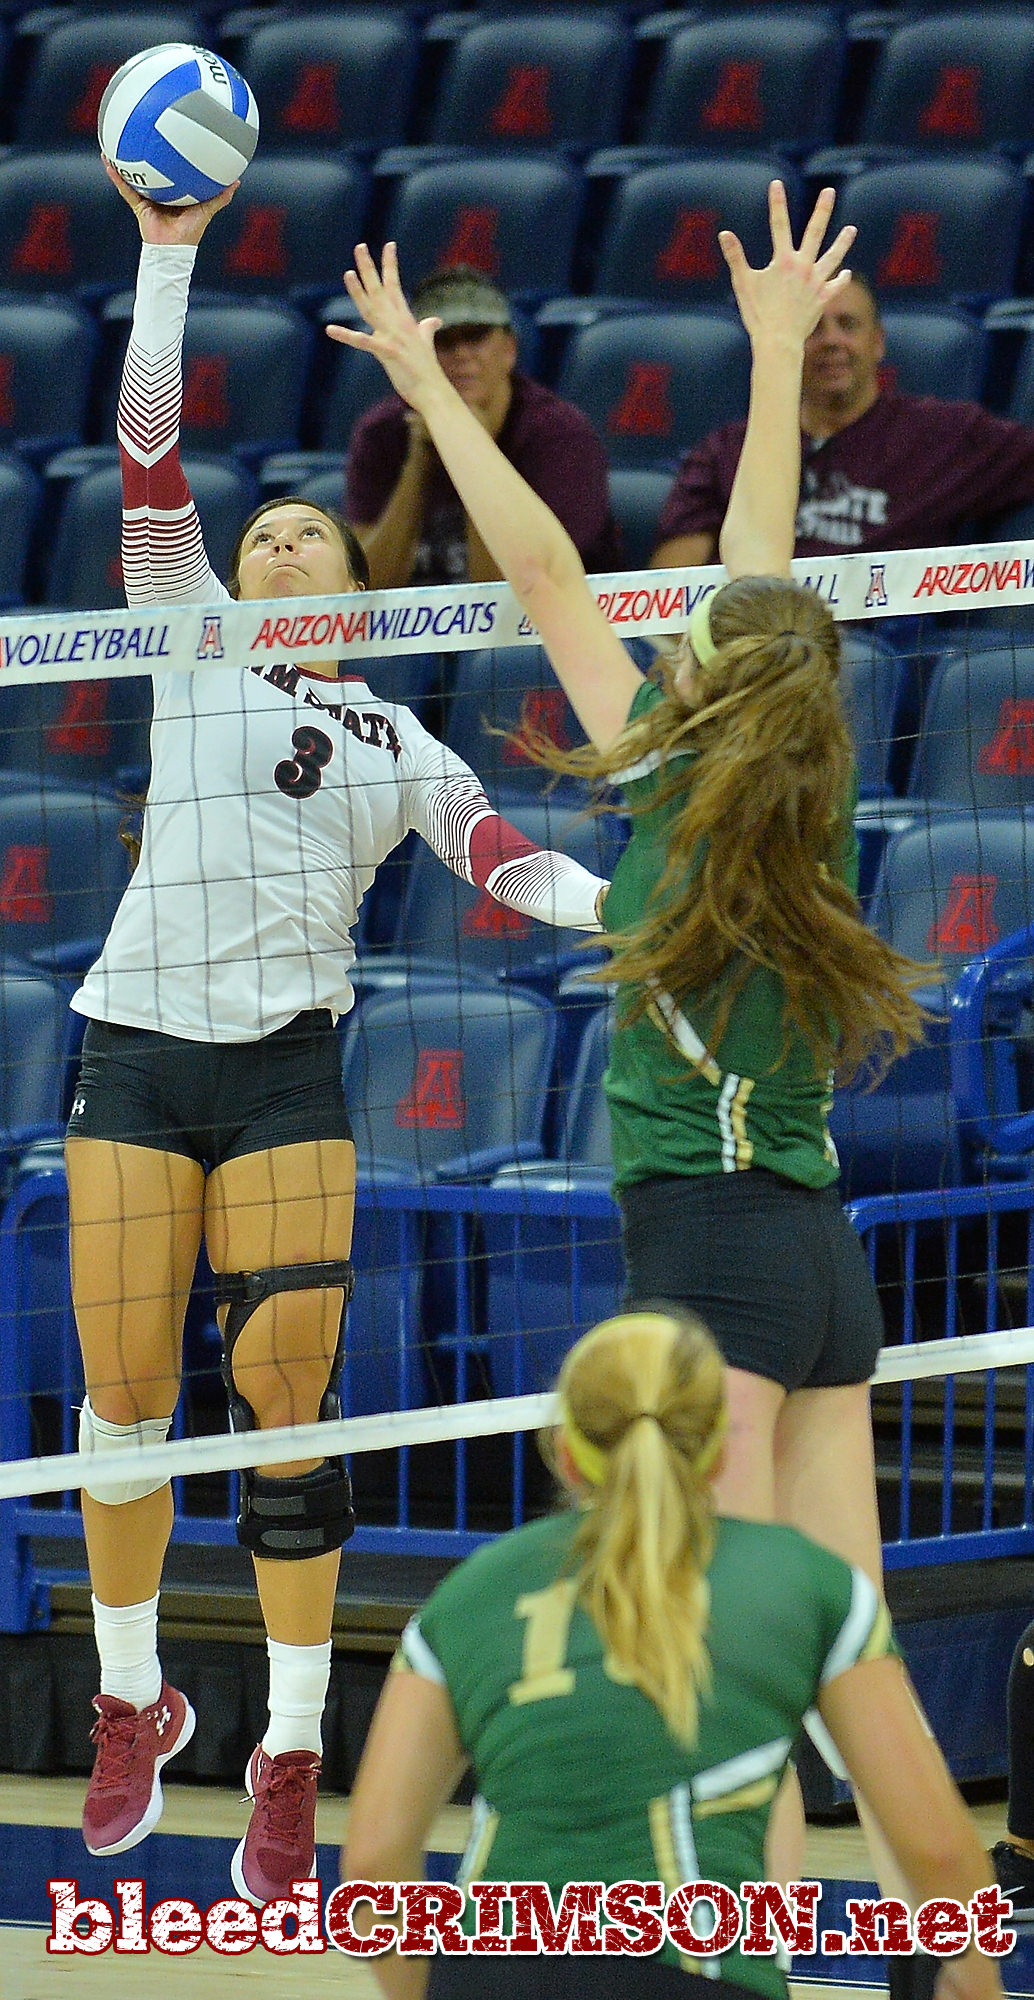 TUCSON, AZ - SEPTEMBER 16:  Jordan Abalos #3 of the New Mexico State Aggies tips a ball over the William & Mary Tribe block in a match between the New Mexico State Aggies and the William & Mary Tribe at the McKale Center in Tucson, Arizona. The Aggies won 3-0.  (Photo by Sam Wasson)